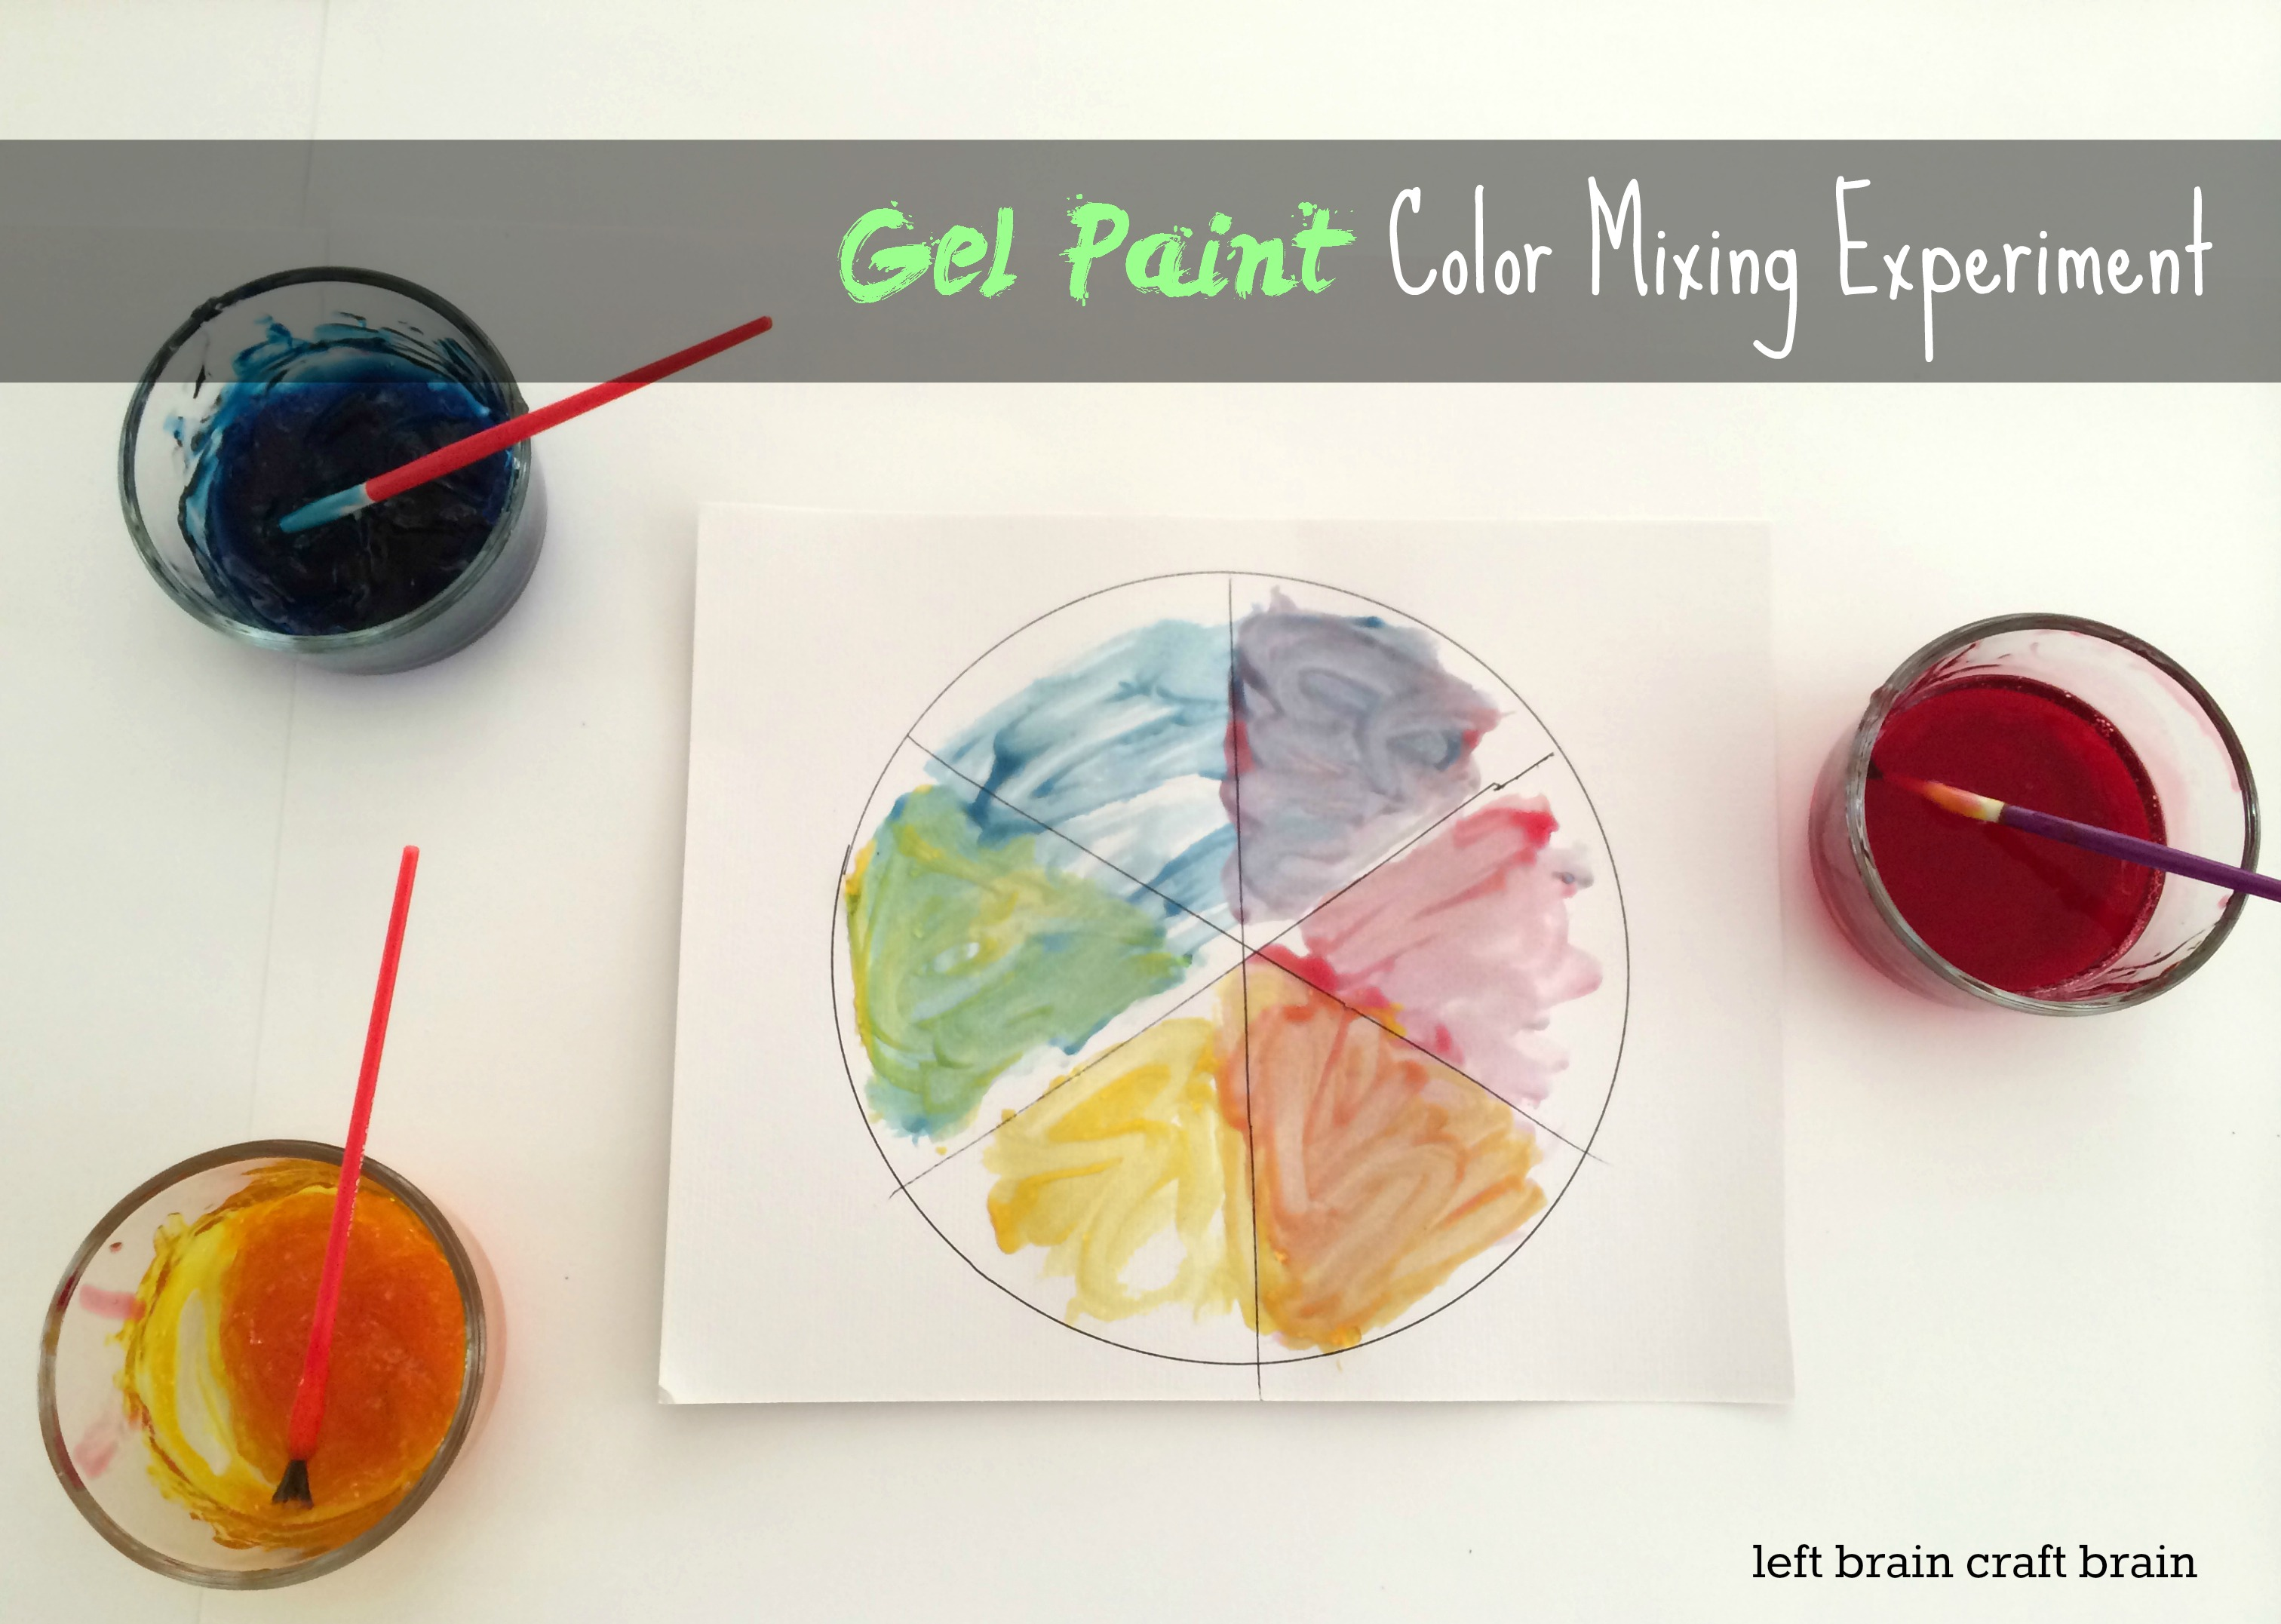 gel paint color mixing experiment left brain craft brain